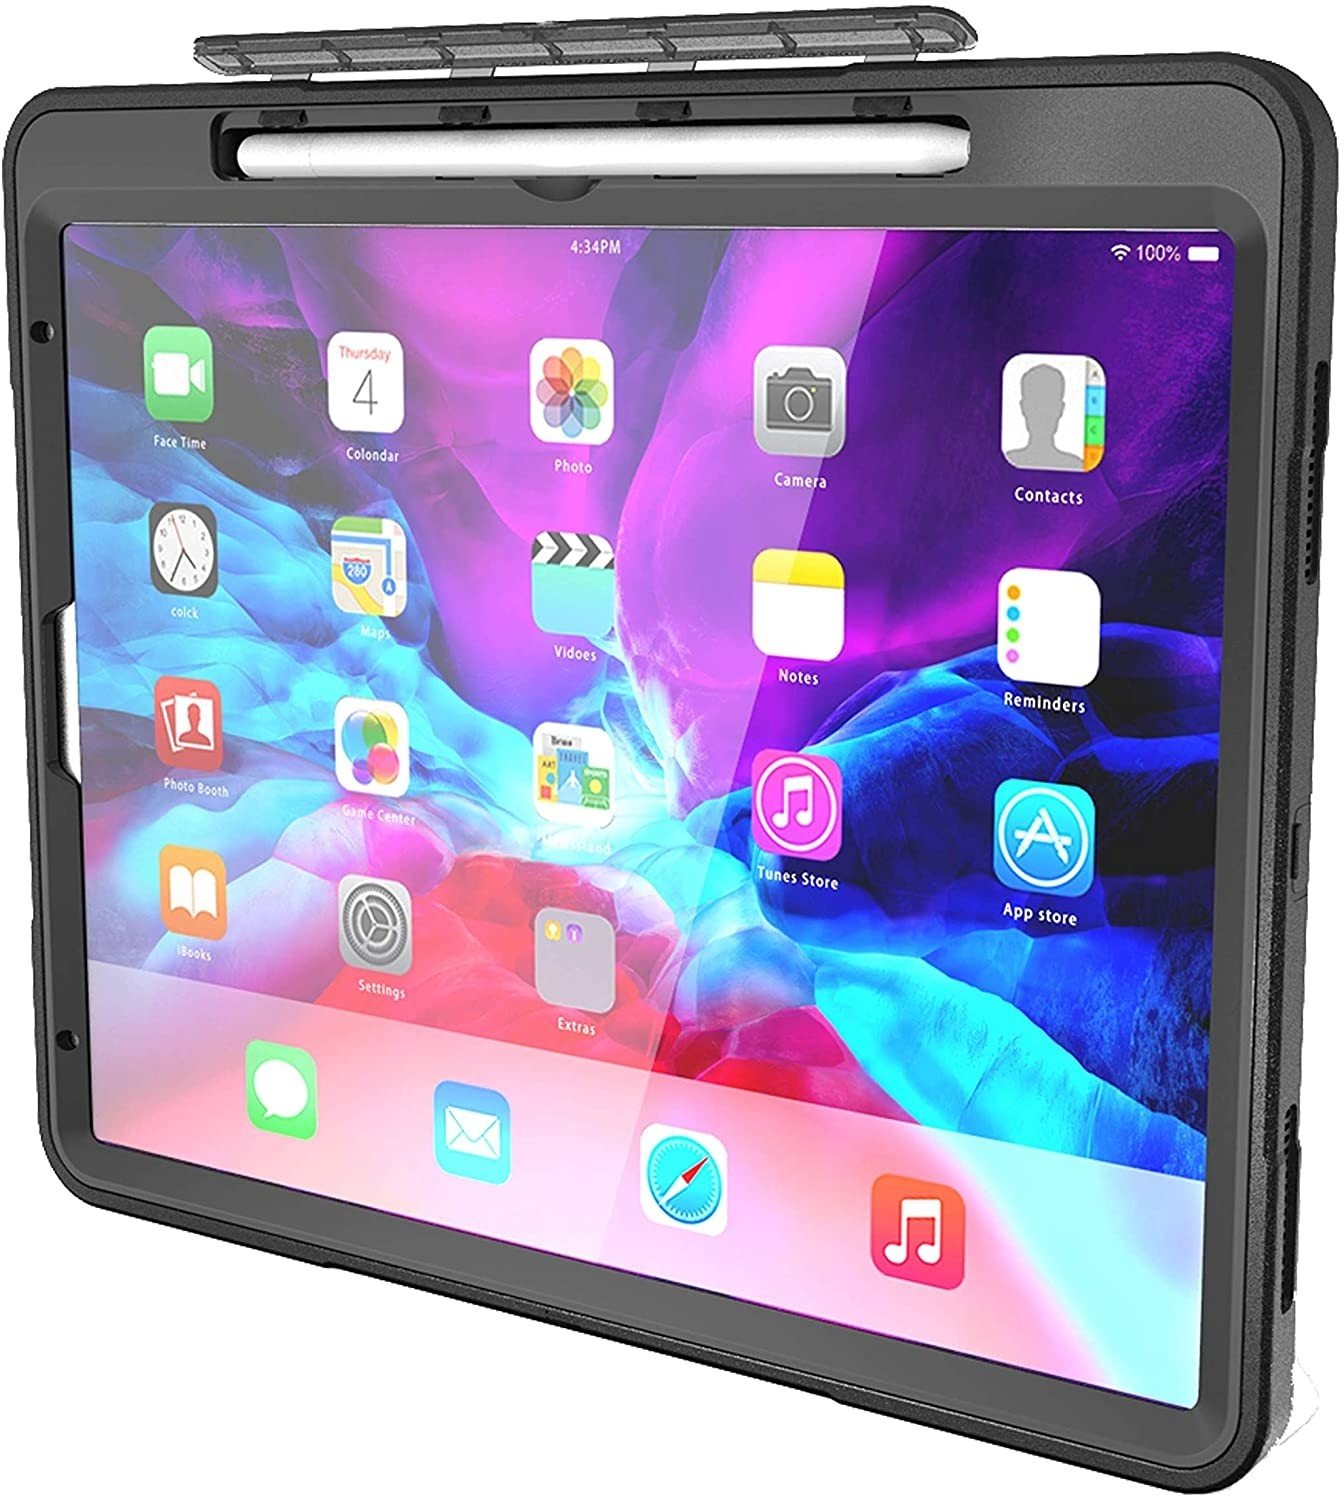 New Trent Ipad Pro 12 9 Case 2020 For Ipad Pro 12 9 Case 4th Generation Full Body Rugged Kickstand Ipad 12 9 2020 Case With Rotational Hand Strap Apple Pencil Holder Built In Screen Protector